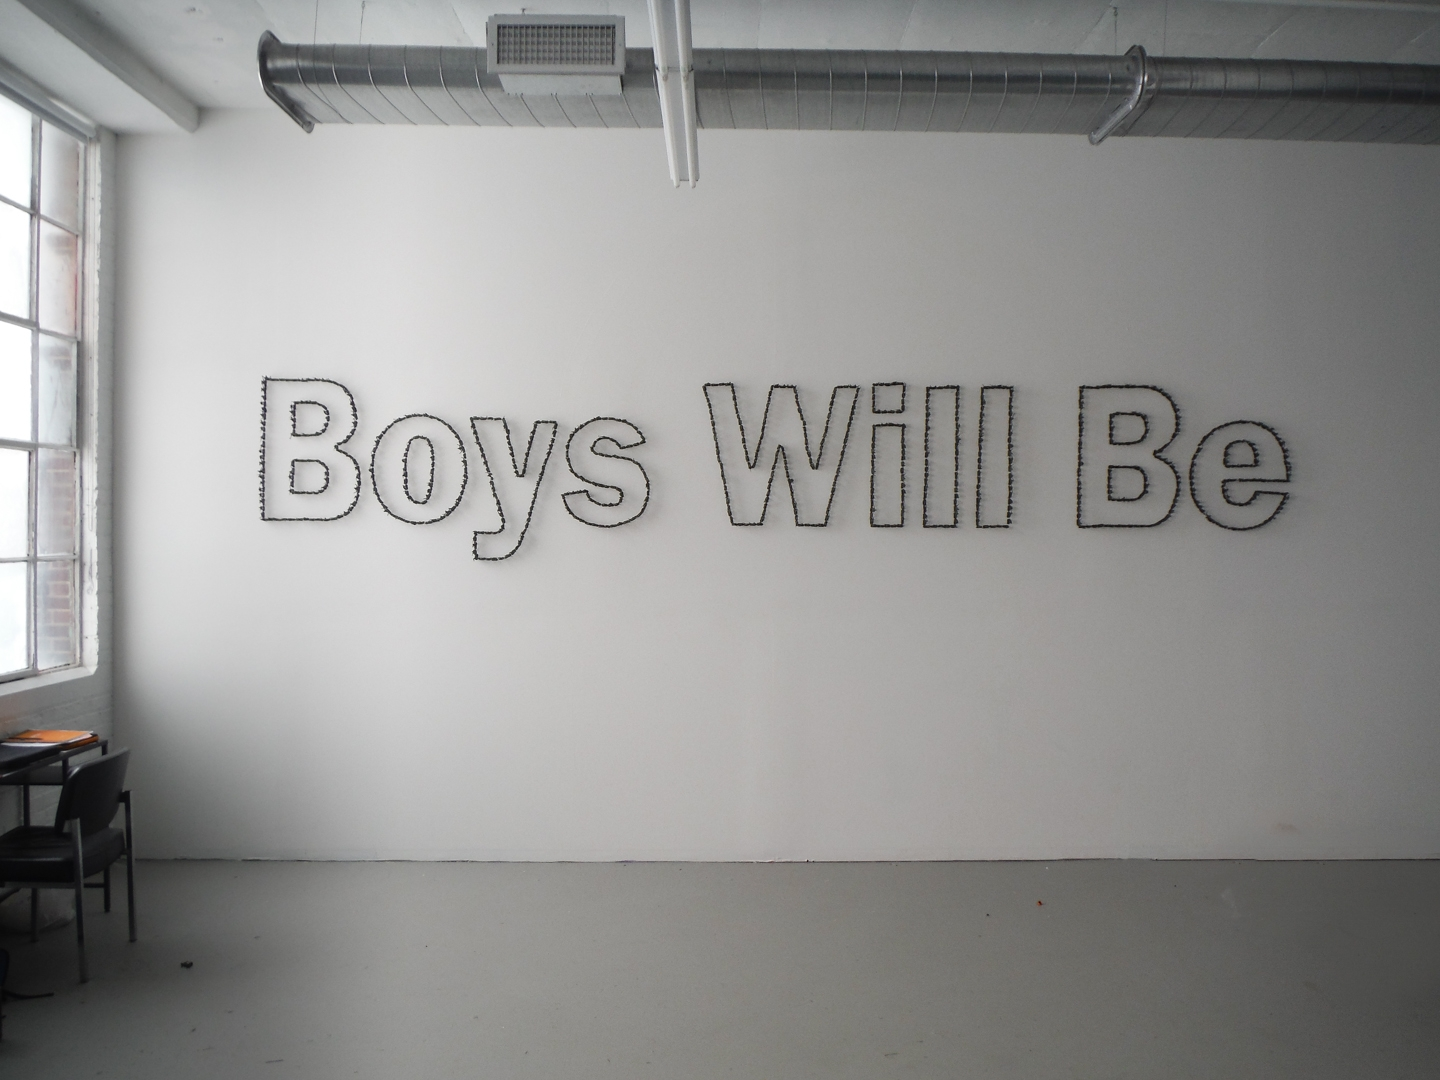 Boys Will Be, Site Specific Wall Installation, Plastic Toy Soldiers, wall adhesive,  approx. 1 m. tall x 5 m. wide, 2015, Ordinary Projects, Mana Fine Art, Chicago.